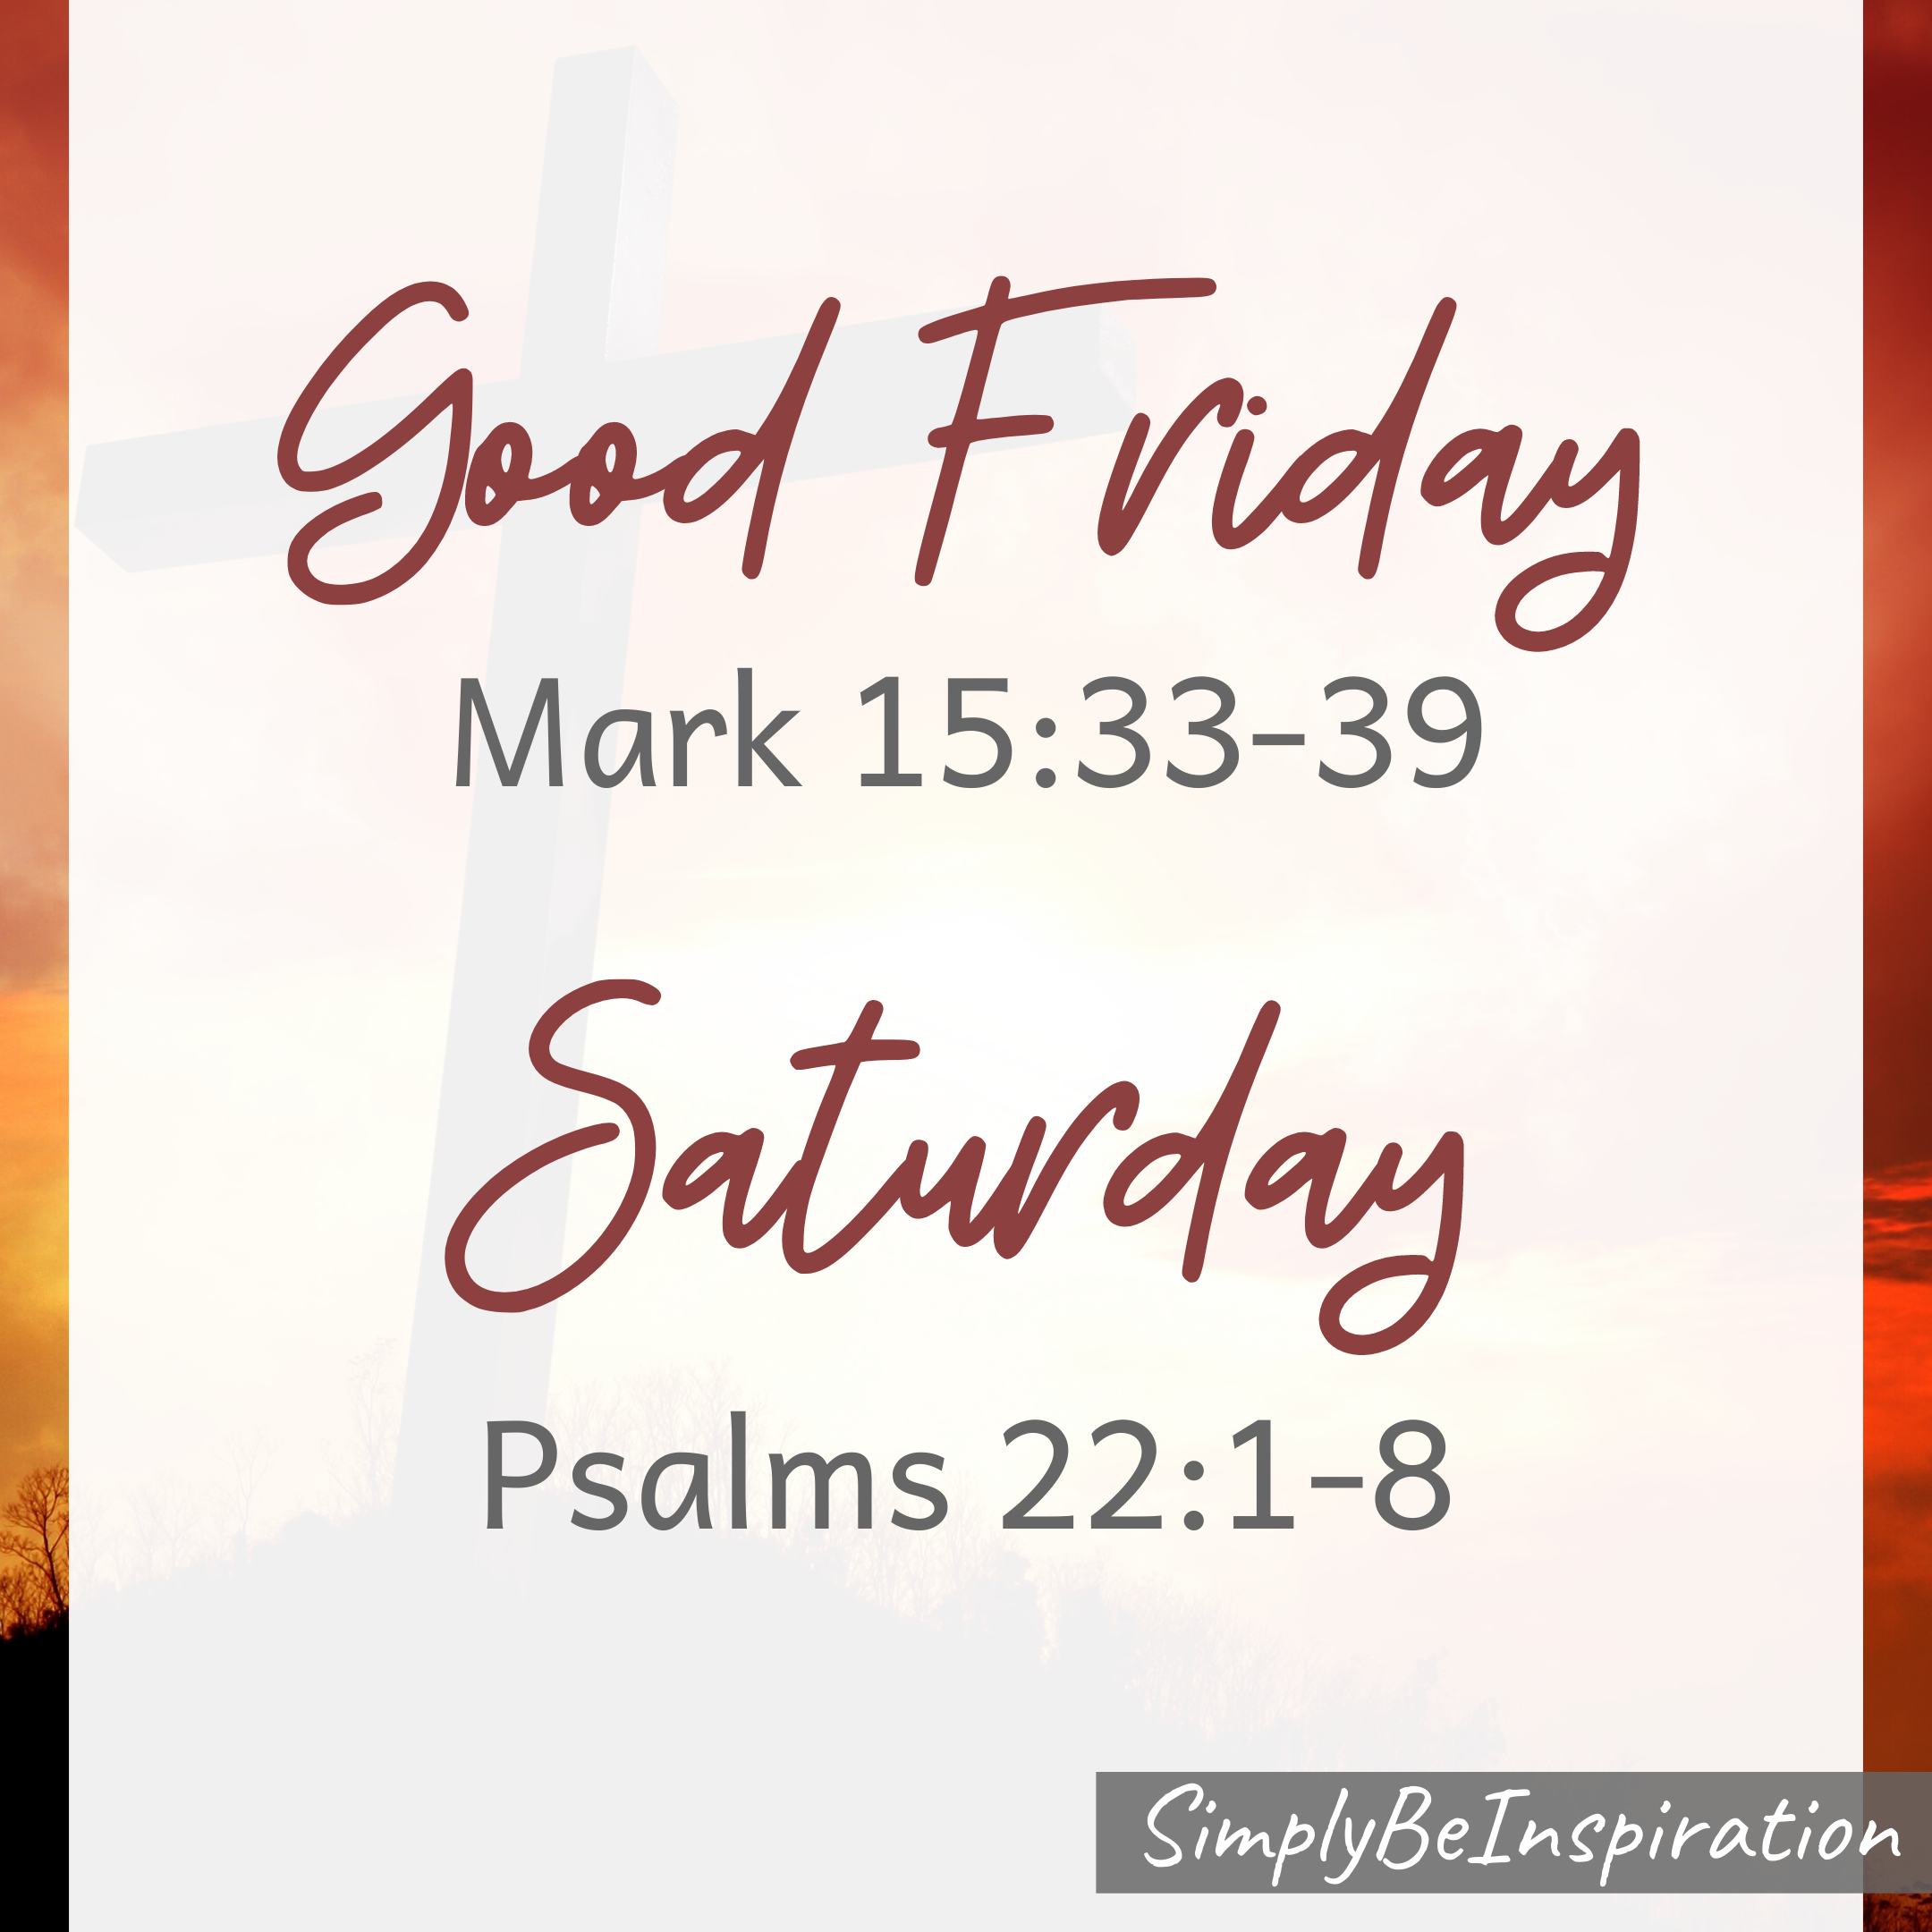 Good Friday Mark 15:33-39